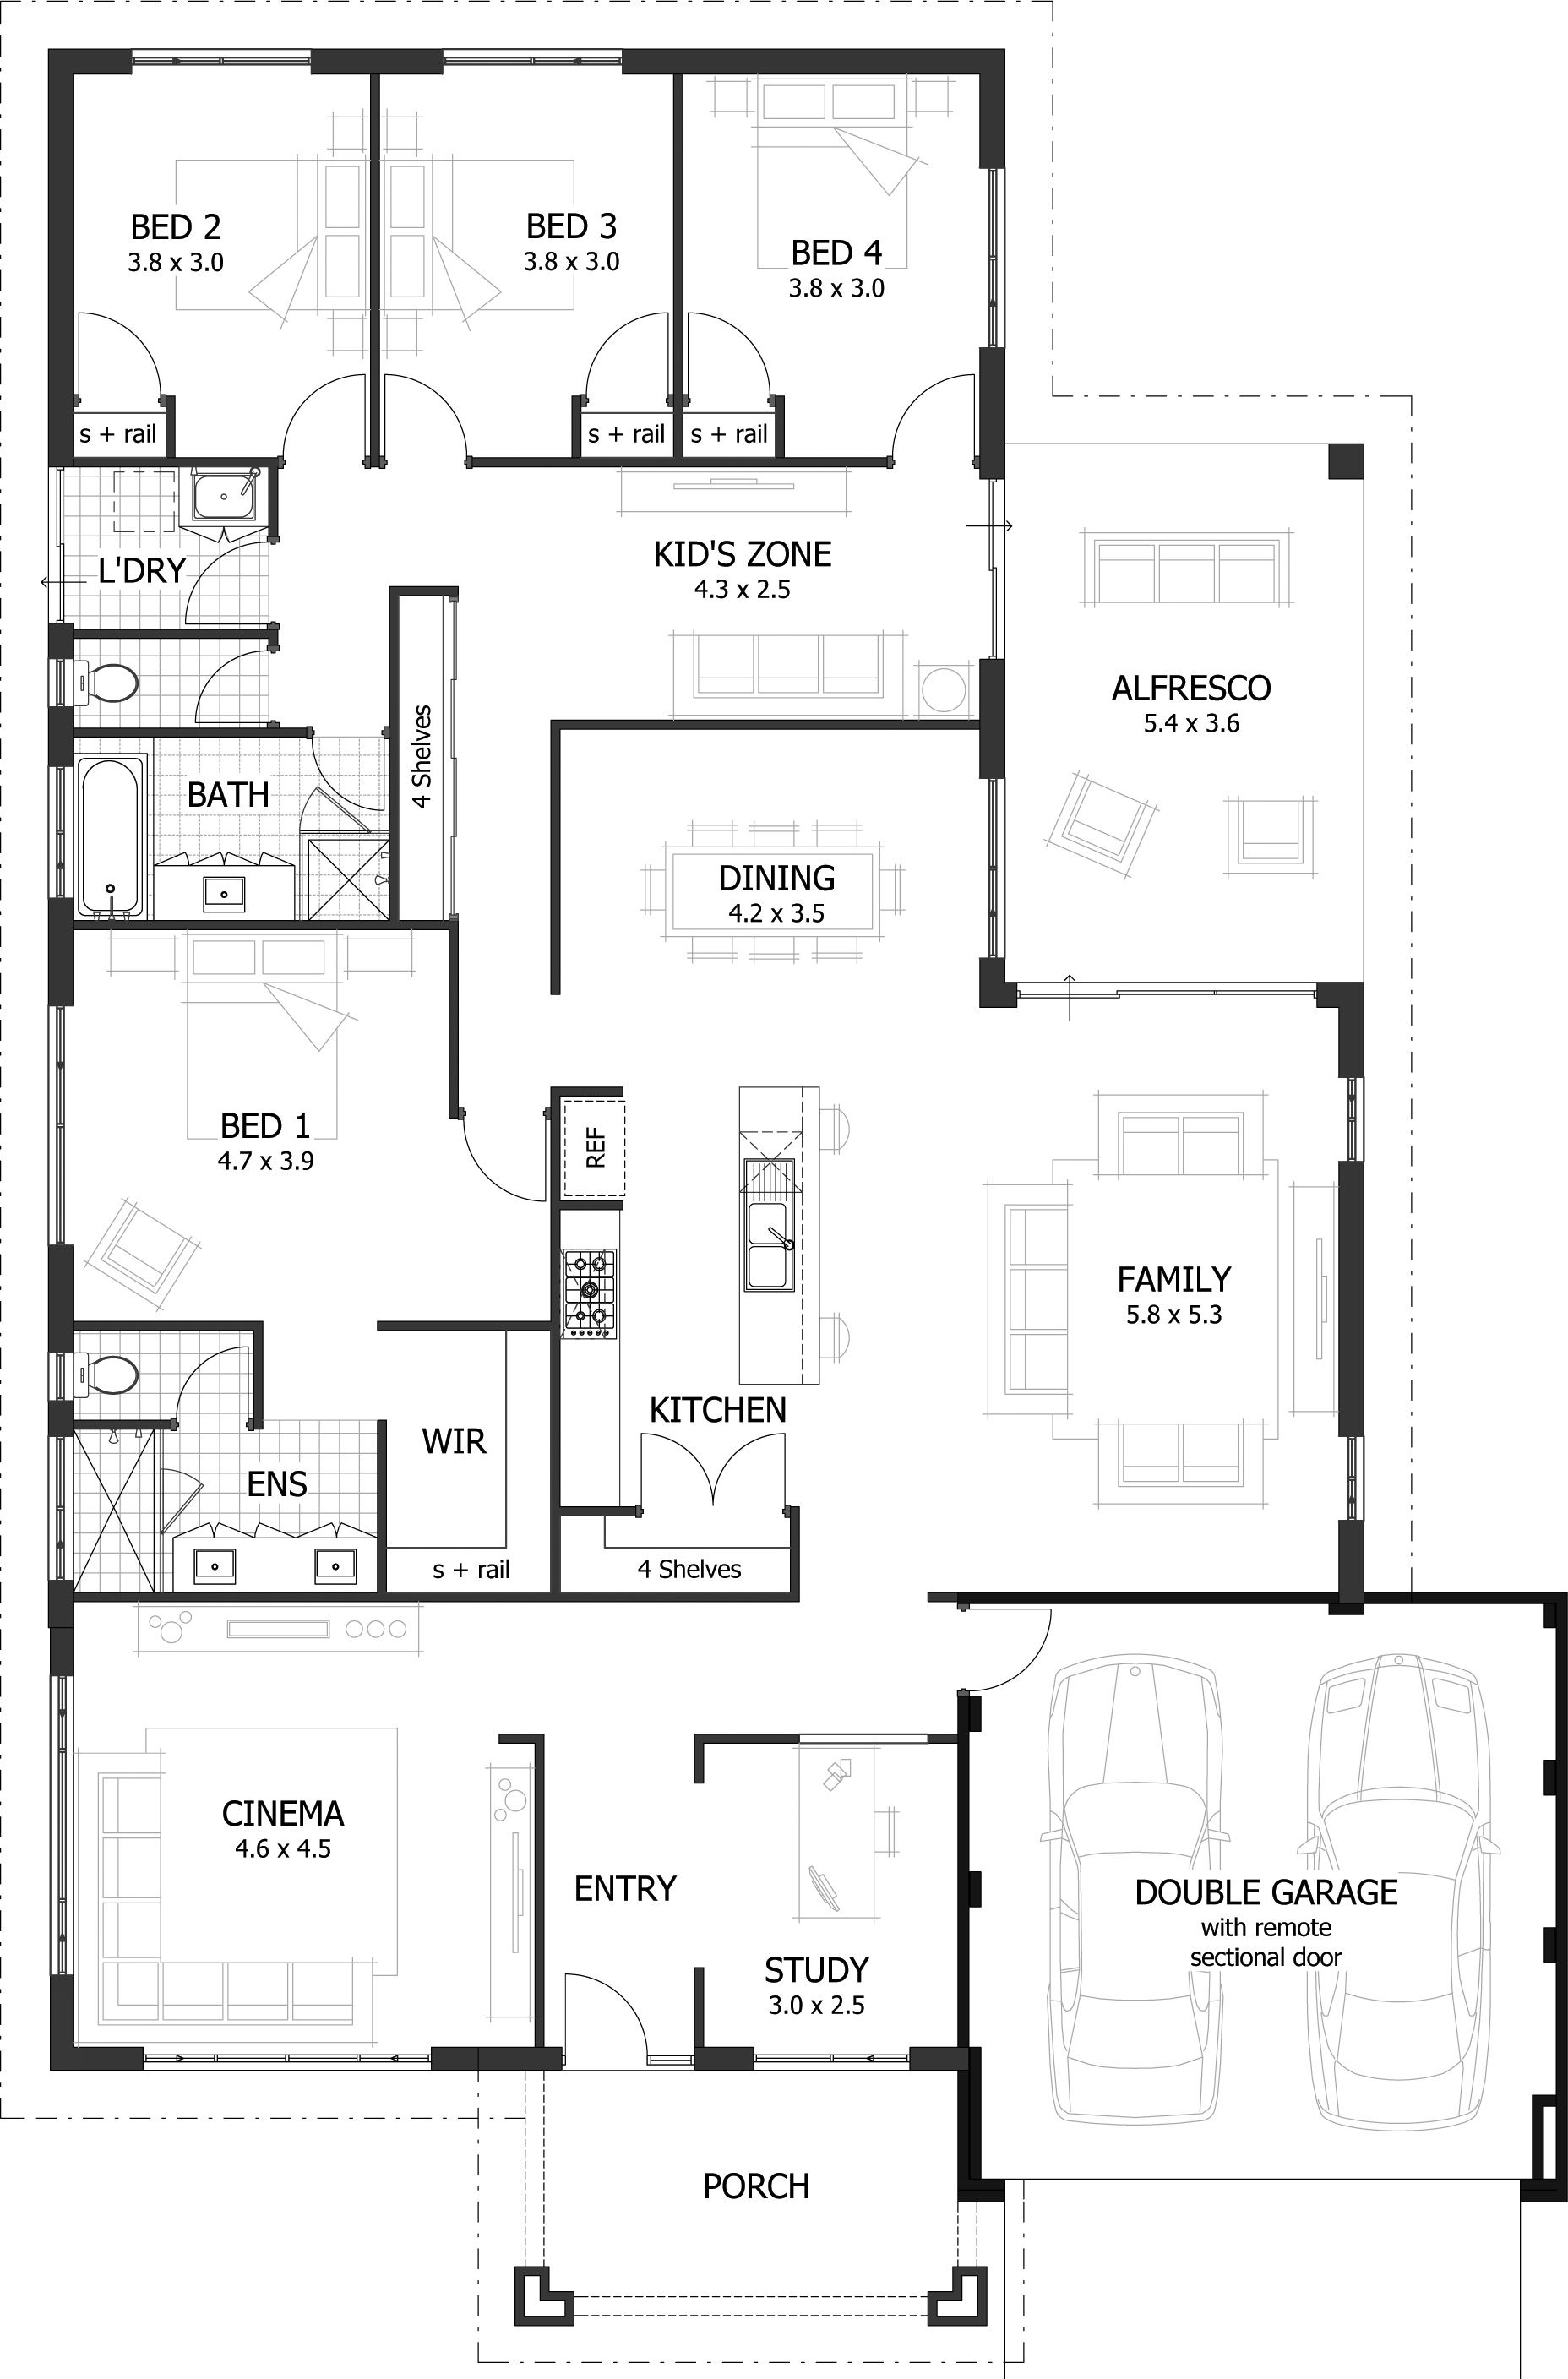 Modern Homes Floorplans 4 Bedroom House Plans And Home Designs Celebration Homes